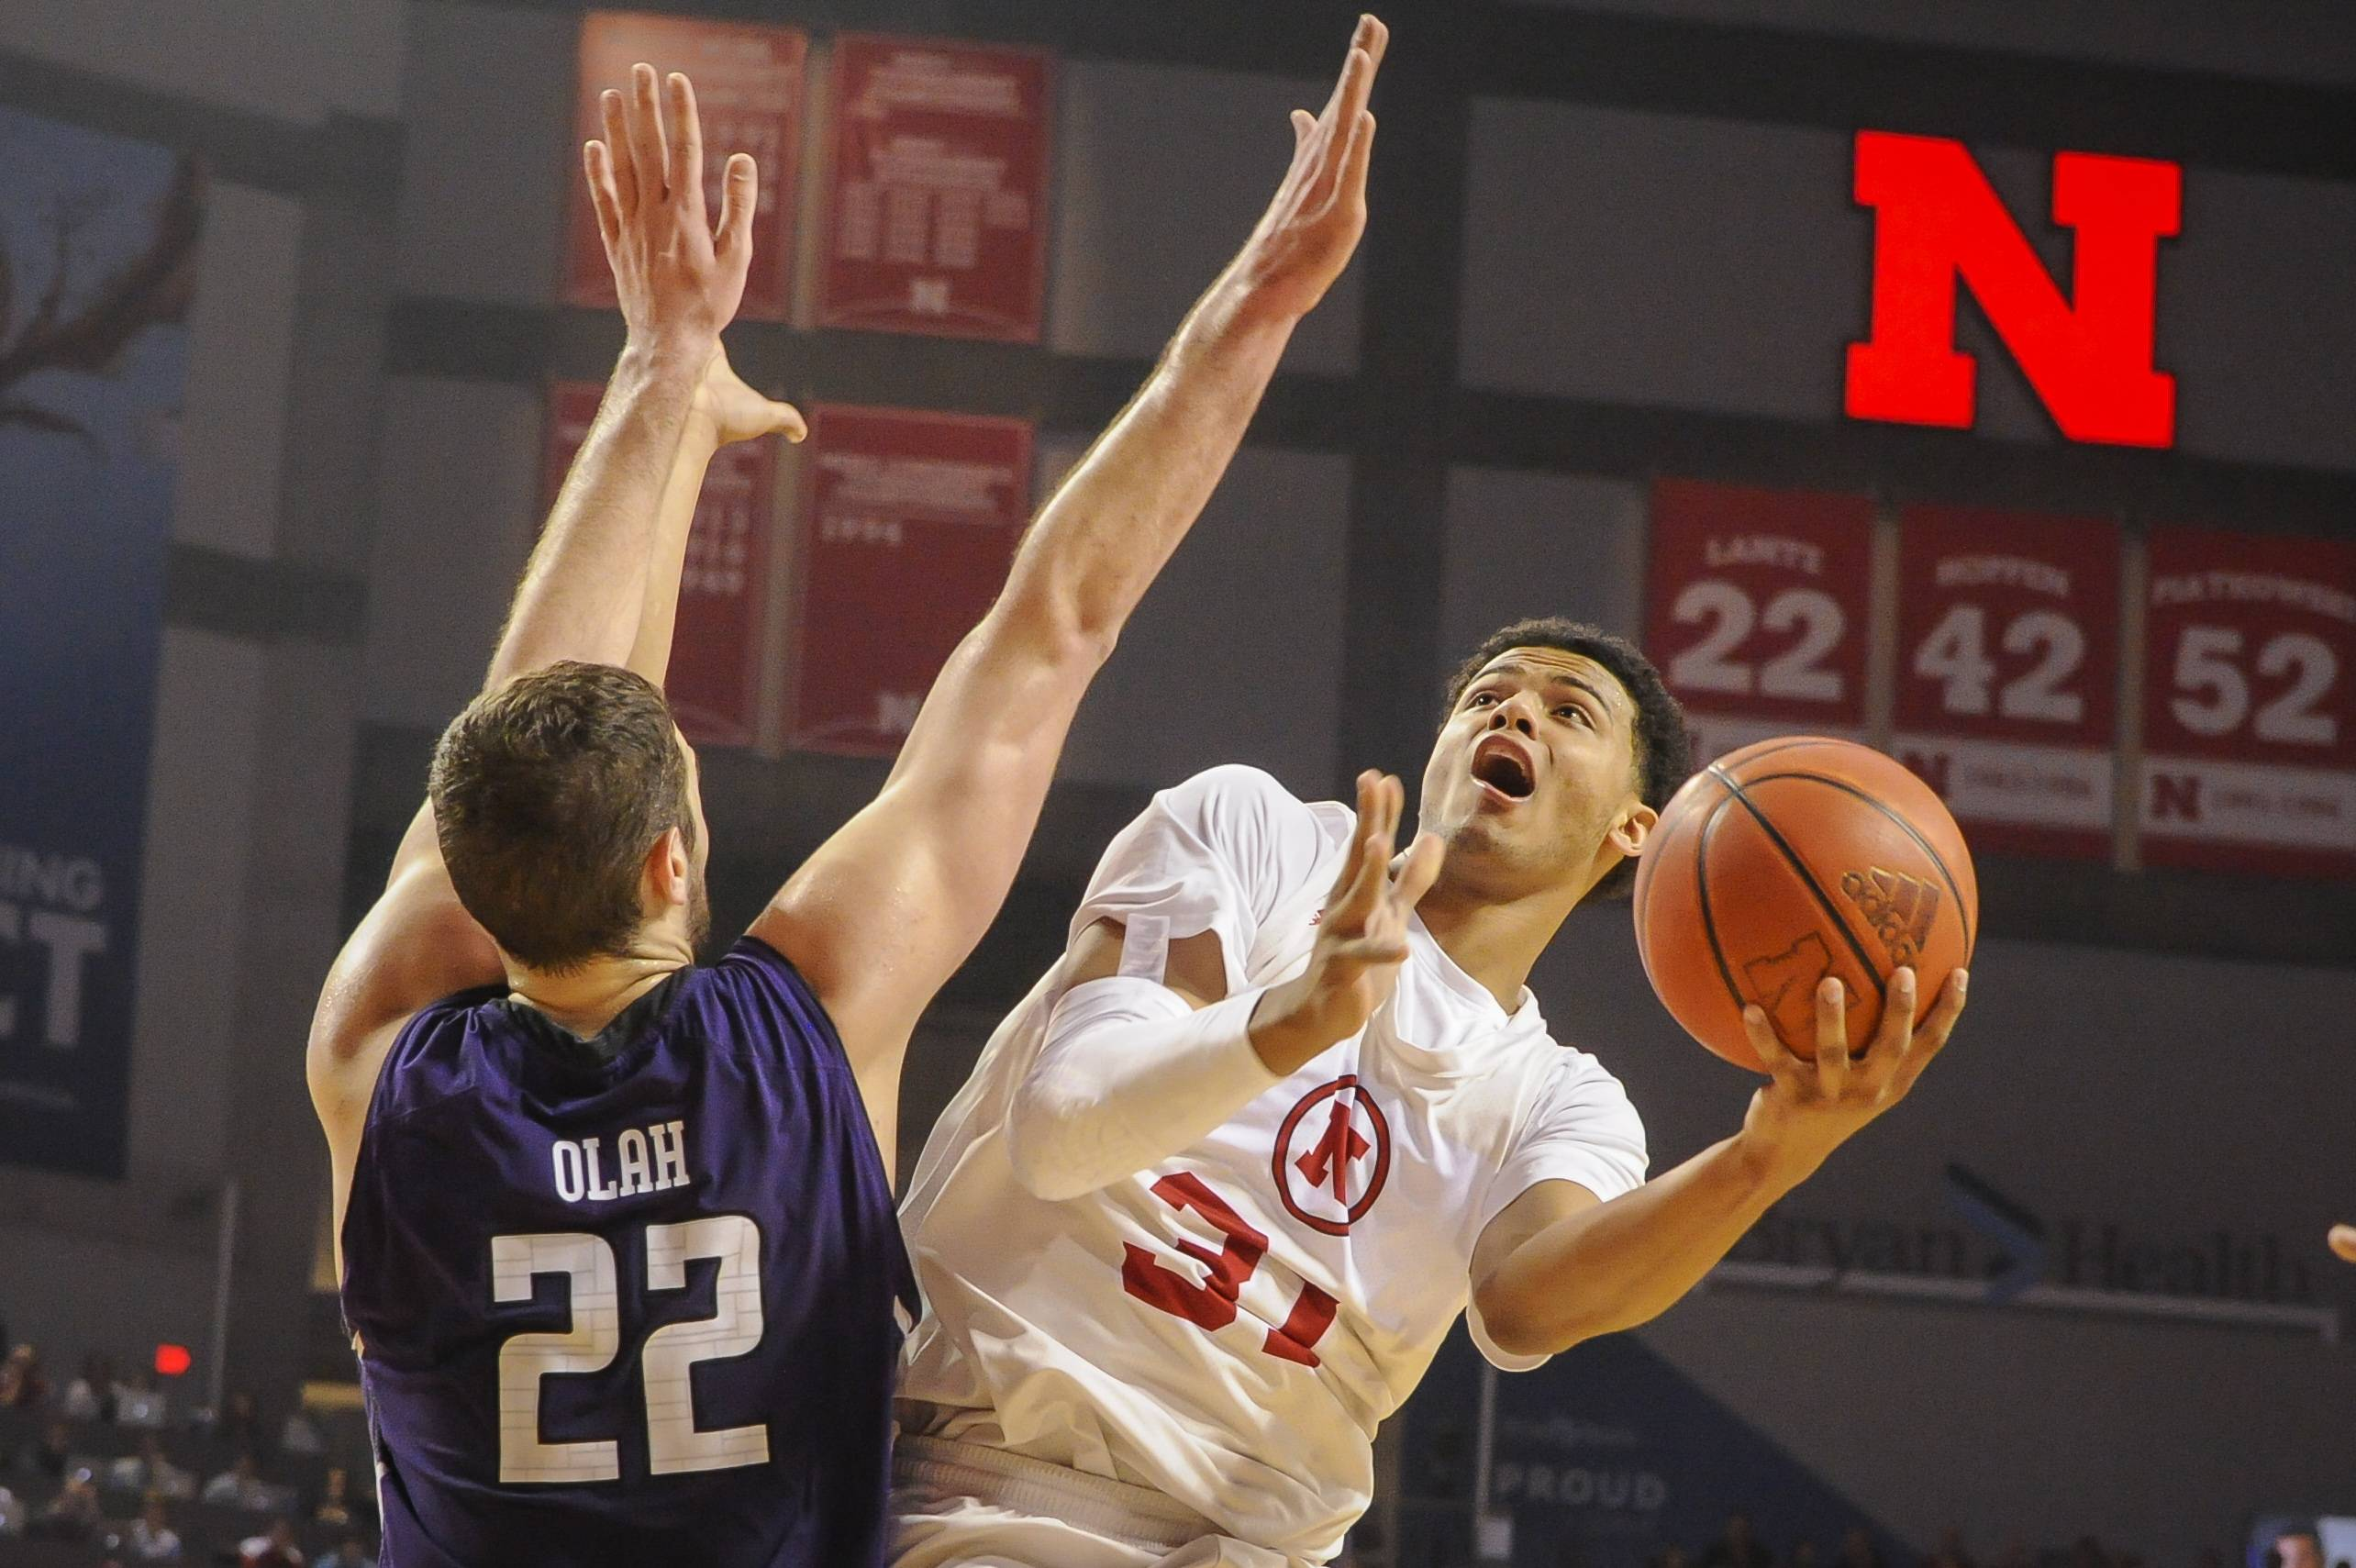 Nebraska's Shavon Shields (31) shoots against Northwestern center Alex Olah (22) during an NCAA college basketball game Saturday in Lincoln. The Huskers beat the Wildcats 54-47.